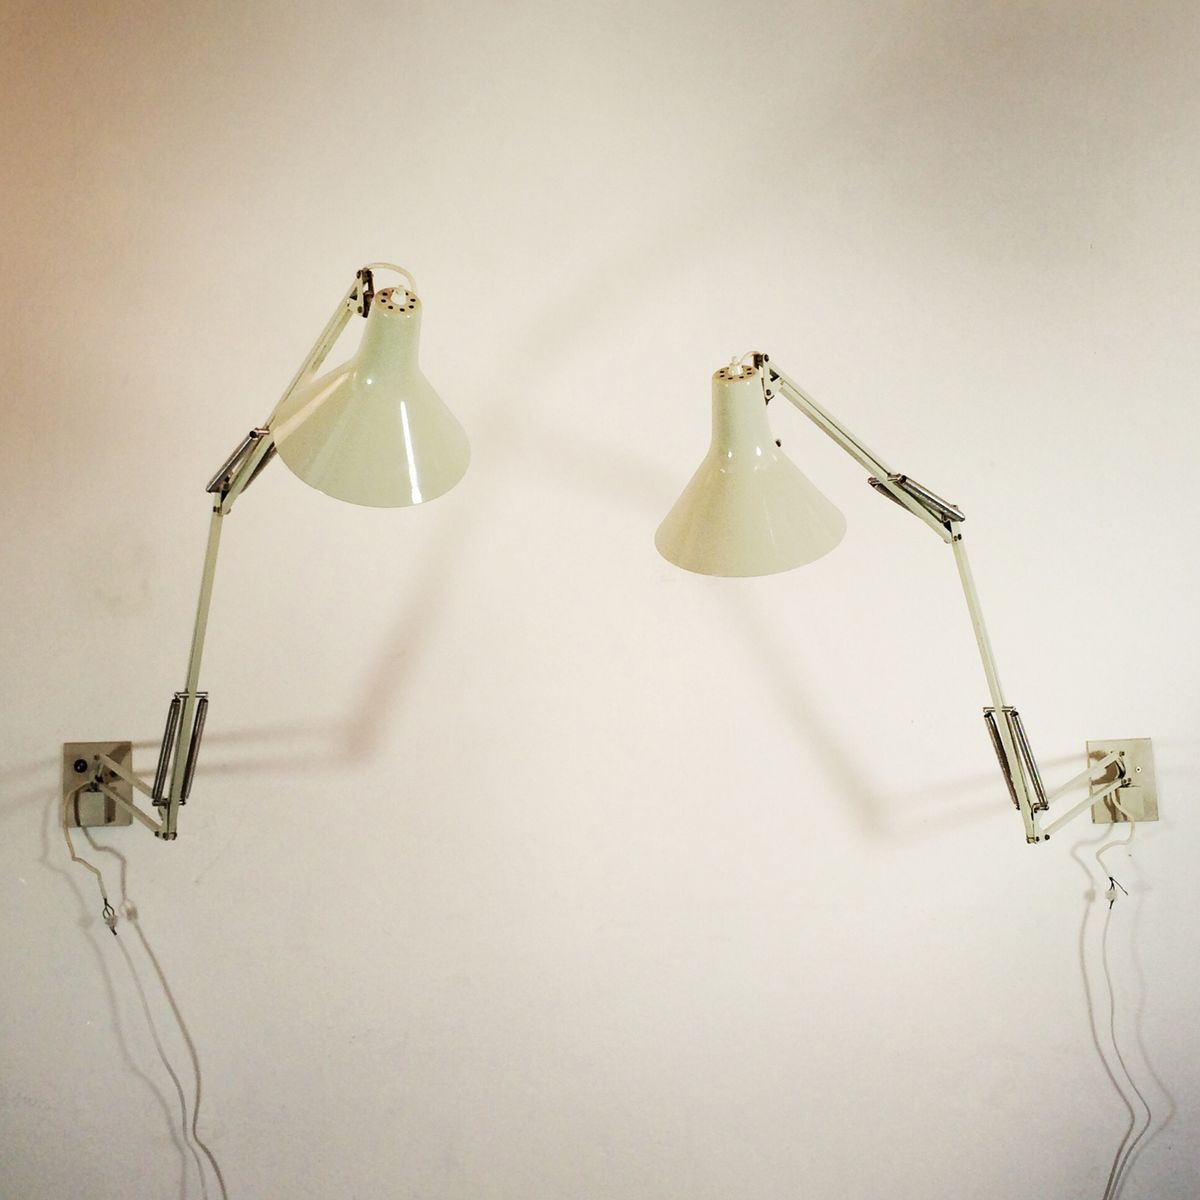 Wall Mounted Adjustable Lamps By Jac Jacobsen For Luxo, Set Of 2